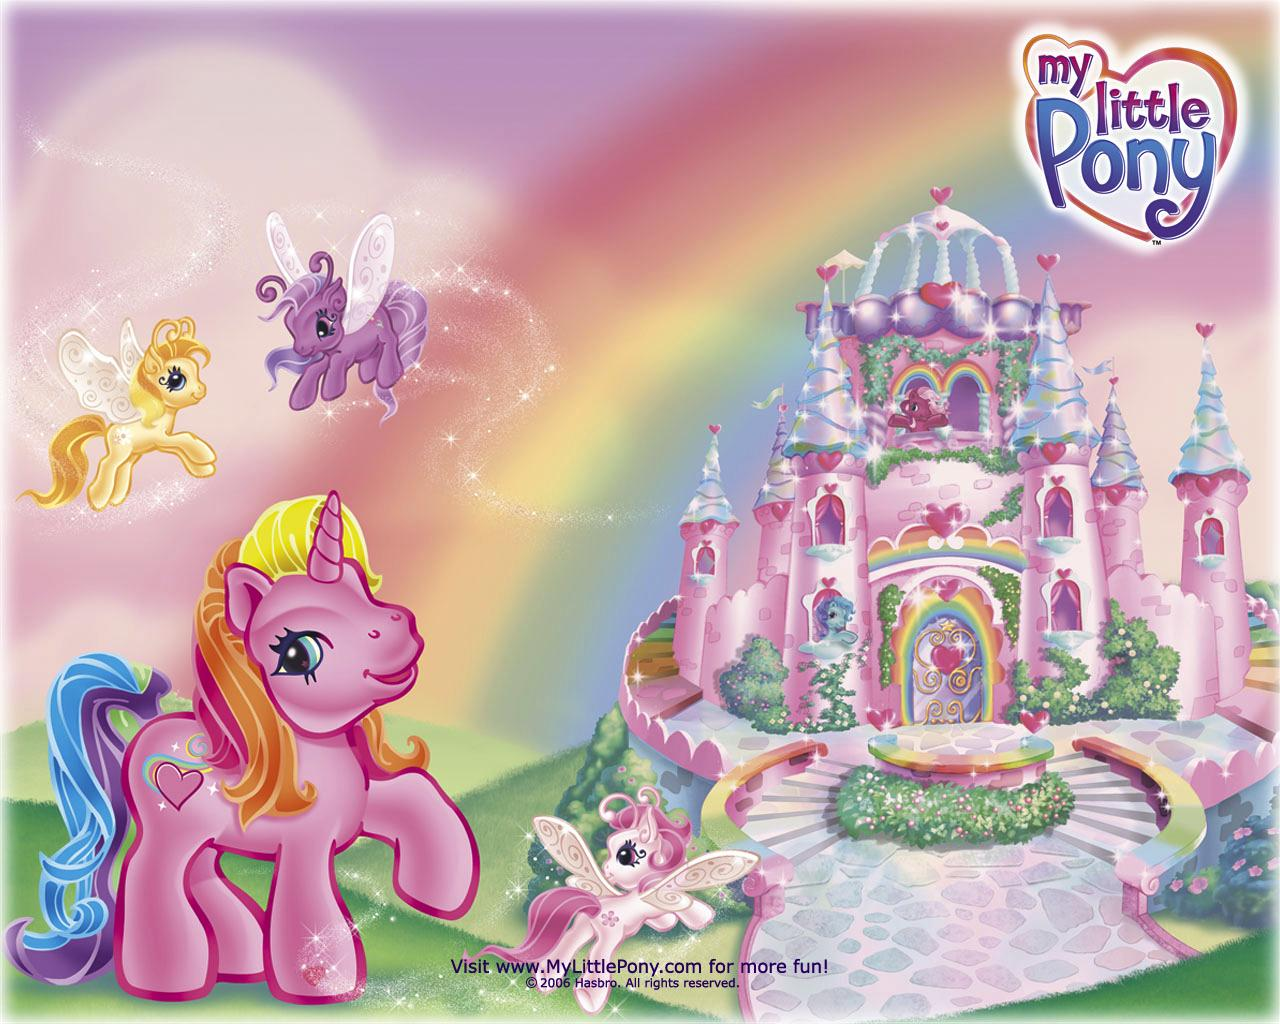 http://3.bp.blogspot.com/-1dBZLCCPEcc/TyN7O7Cp9QI/AAAAAAAABaY/G7S2sQ3JLtc/s1600/My-Little-Pony-my-little-pony-256751_1280_1024.jpg